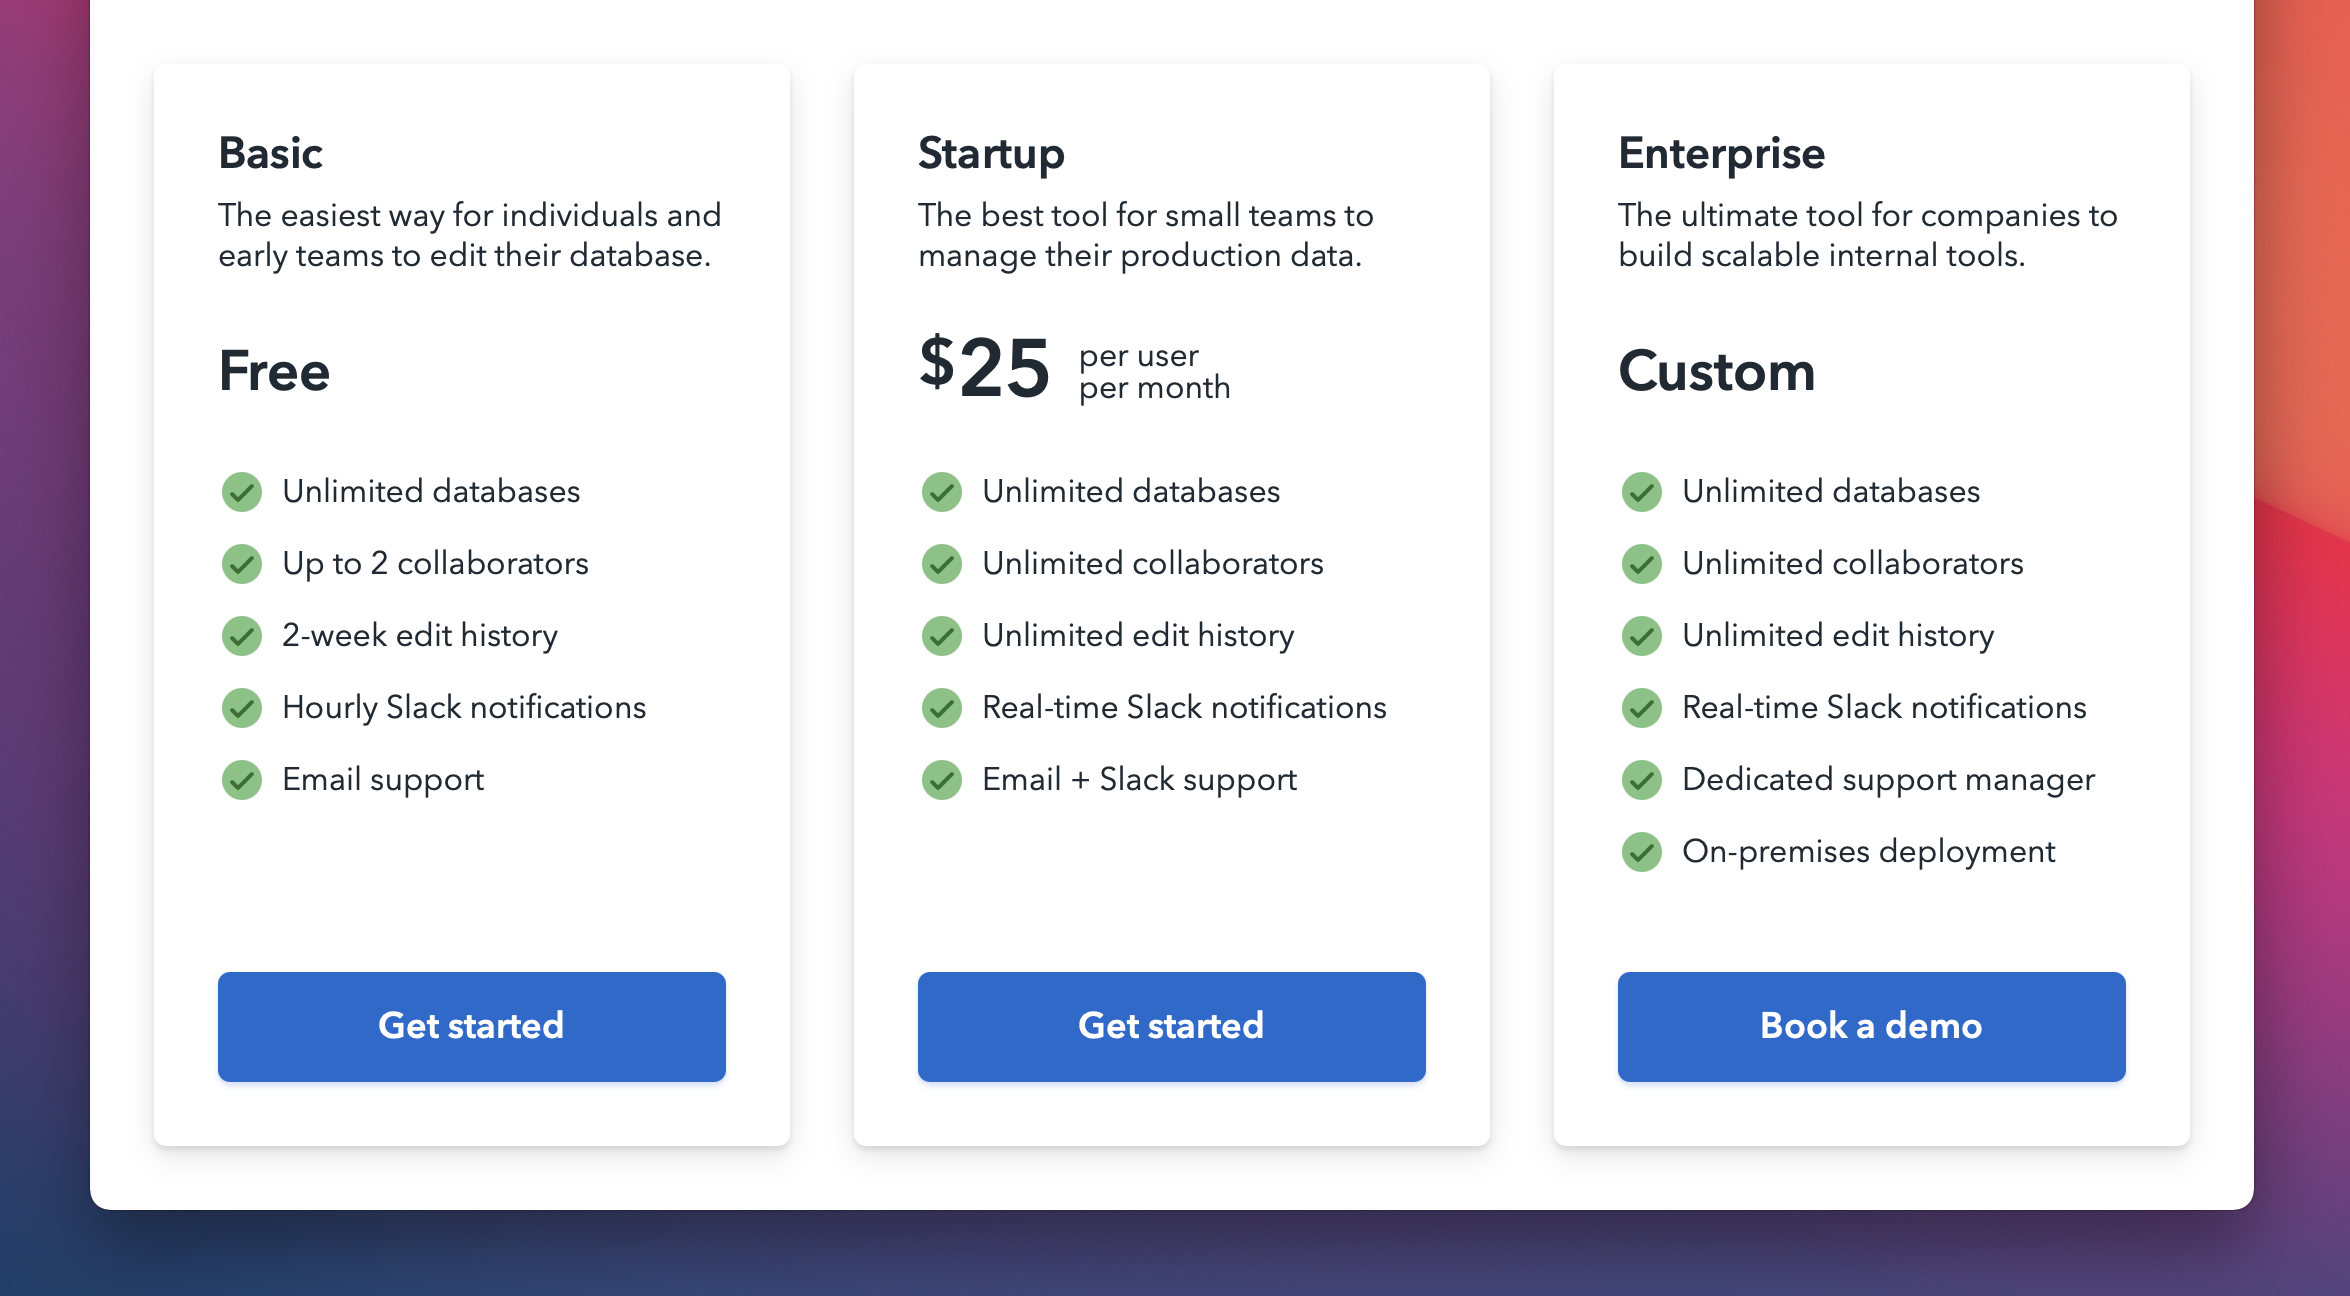 Overview of plans and functionality for BaseDash, including Basic, Startup, and Enterprise.